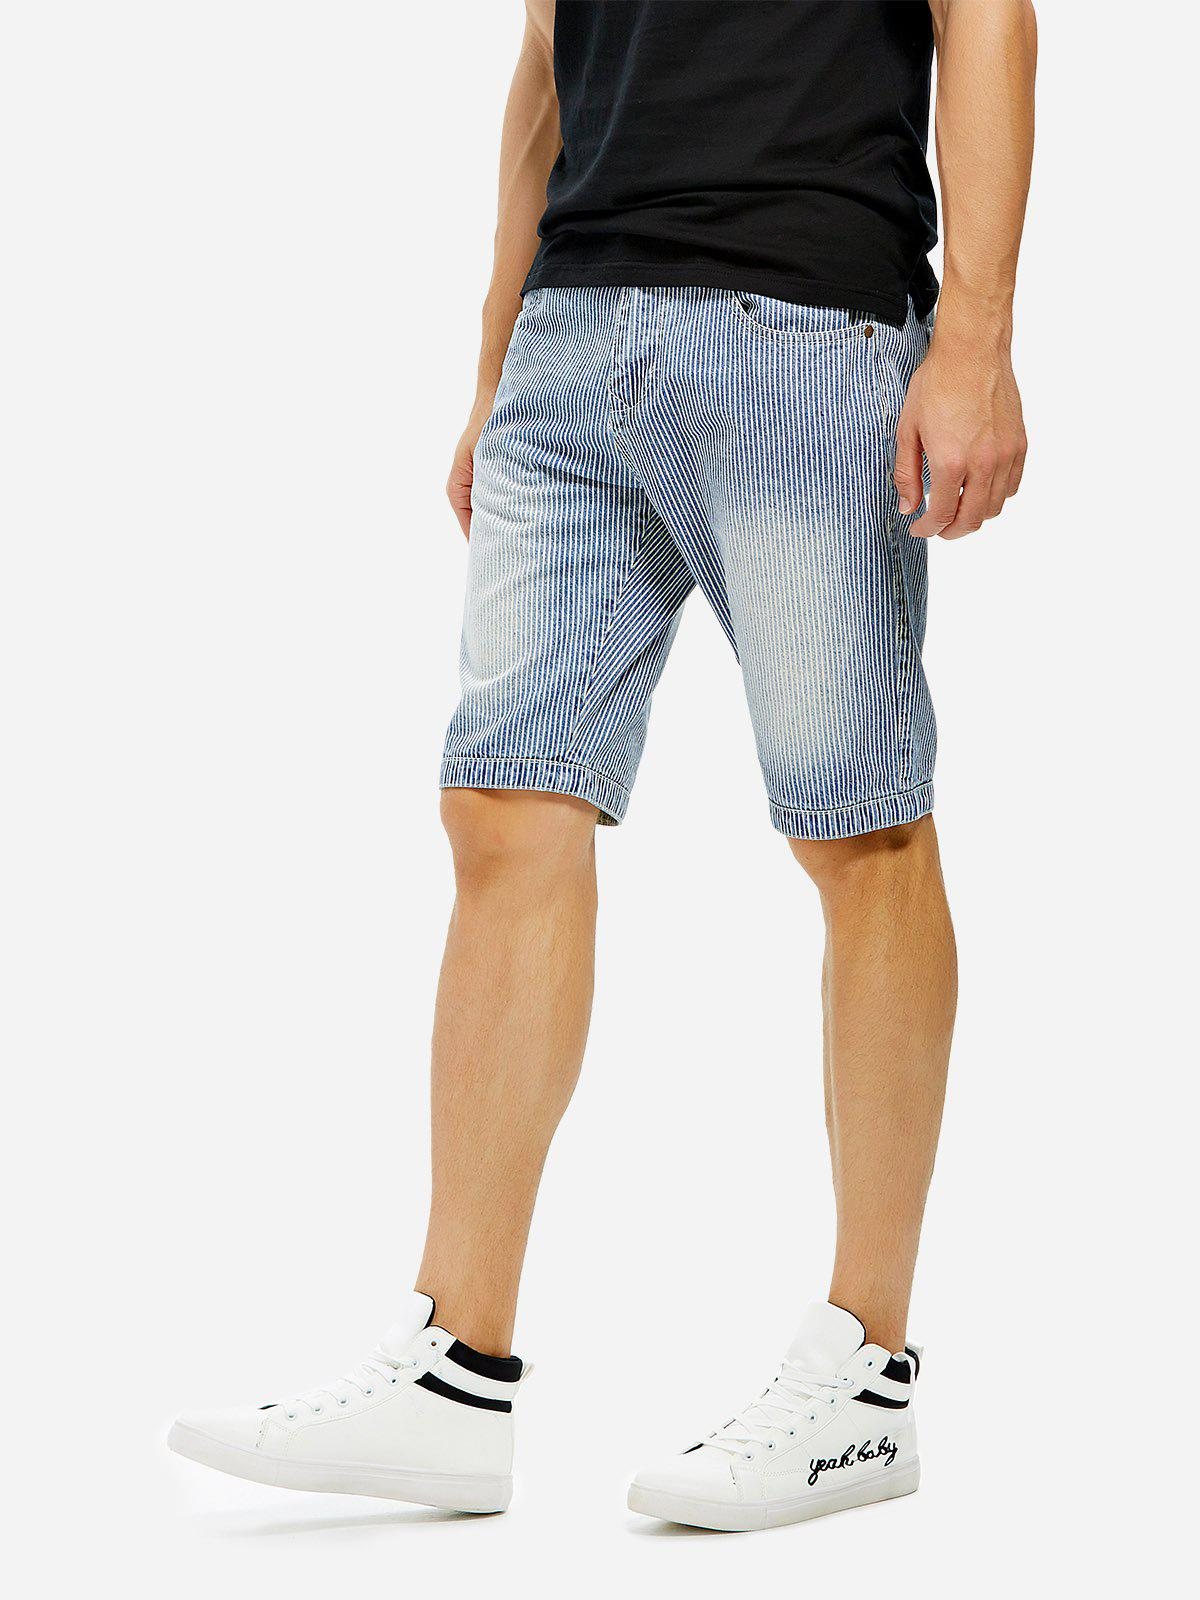 Chic ZAN.STYLE Knee Length Contrast Denim Shorts